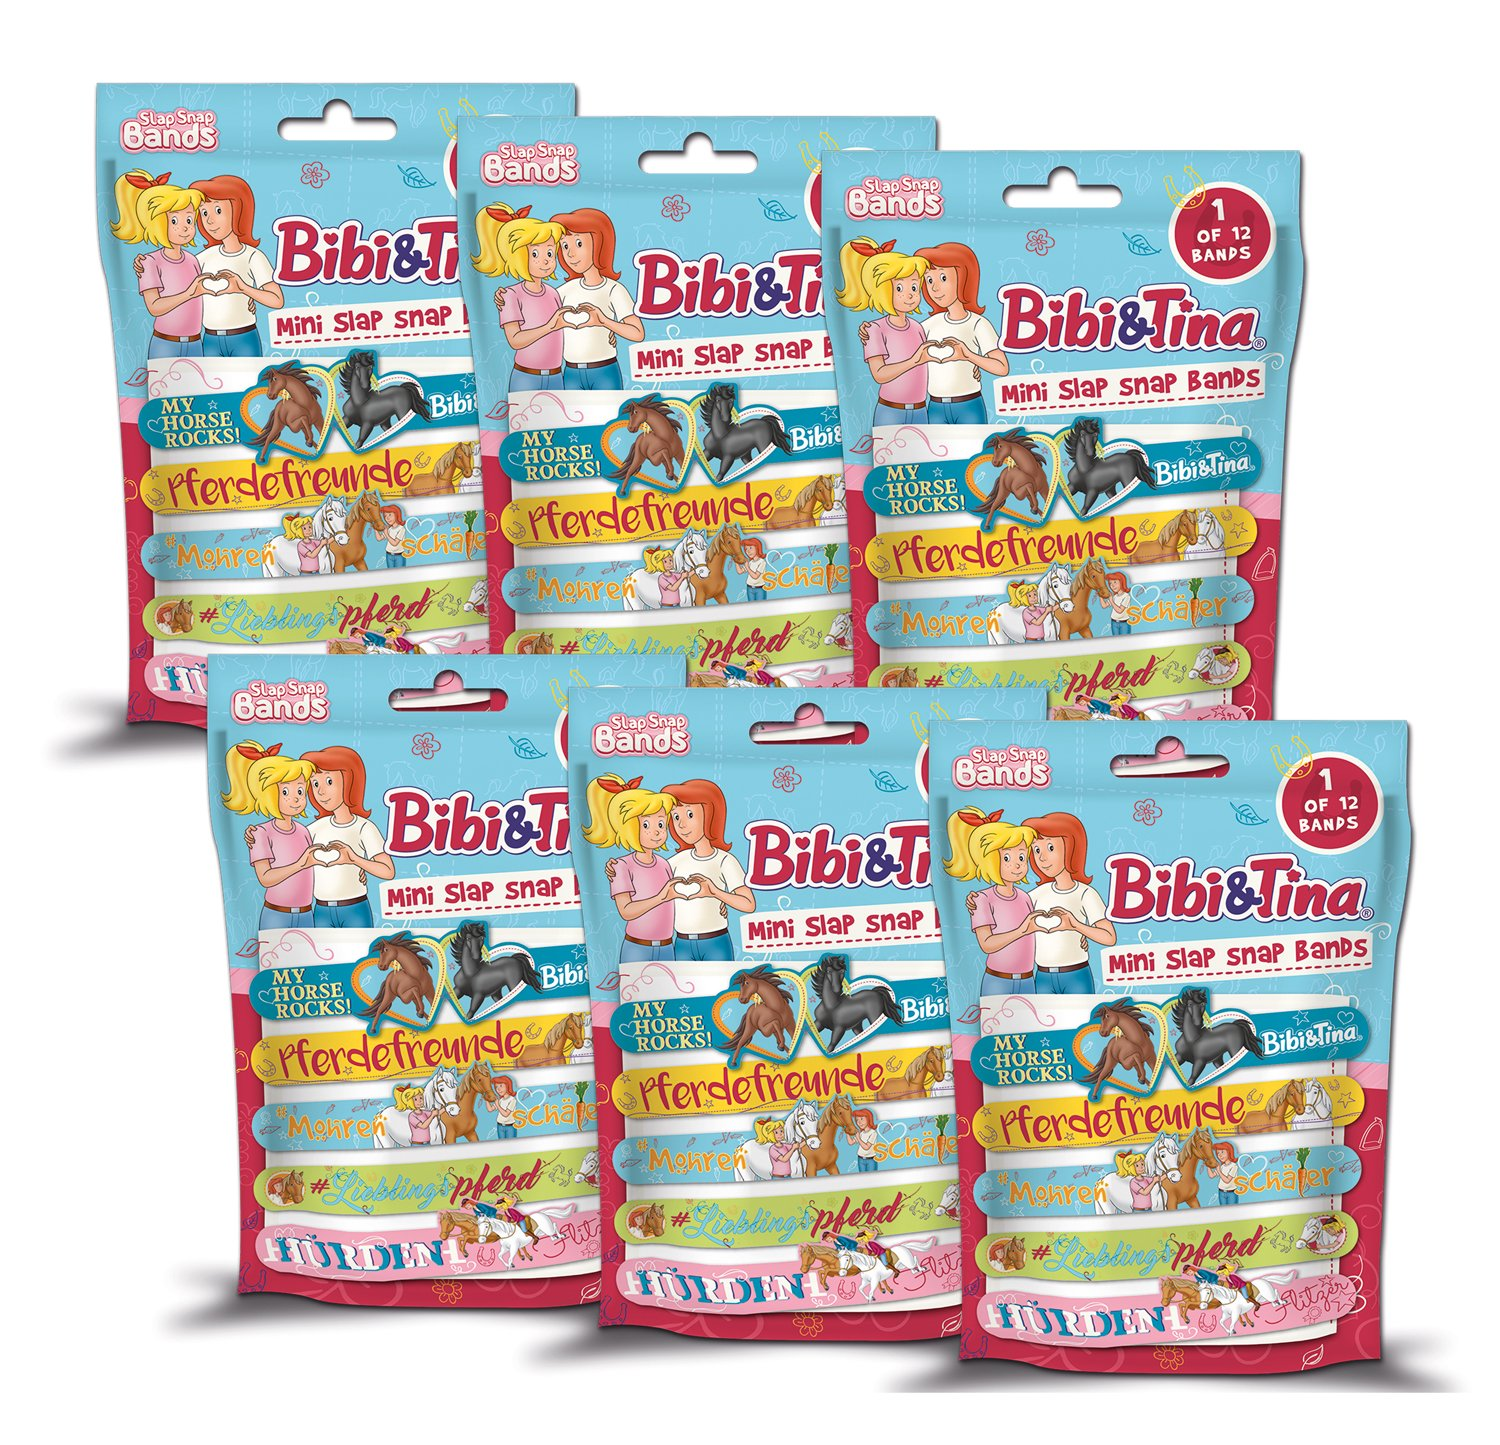 Craze 14363 Slap-Snap-Bands, Bibi und Tina, 6 Foilbags, Sortiert, Unisex-Child